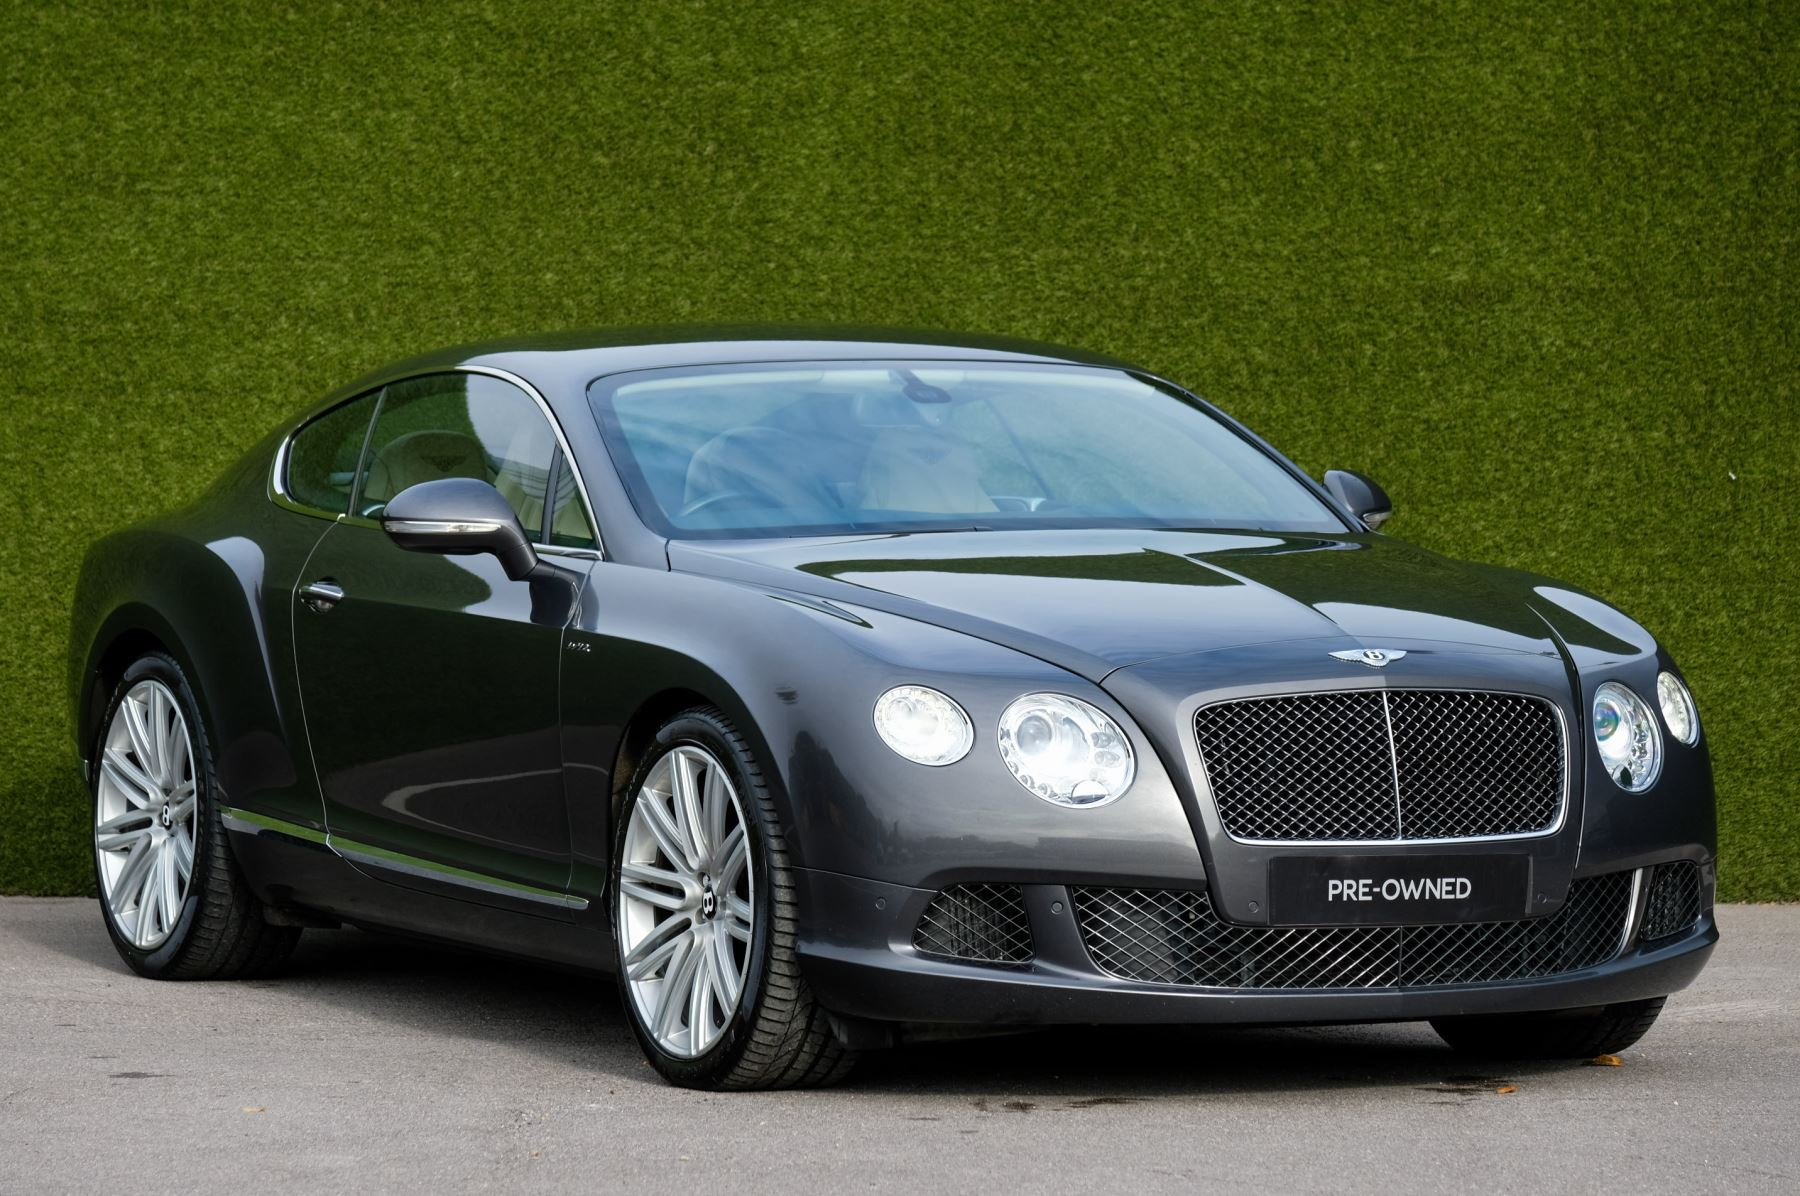 Bentley Continental GT 6.0 W12 Speed - 21 inch Speed Alloy Wheels Automatic 2 door Coupe